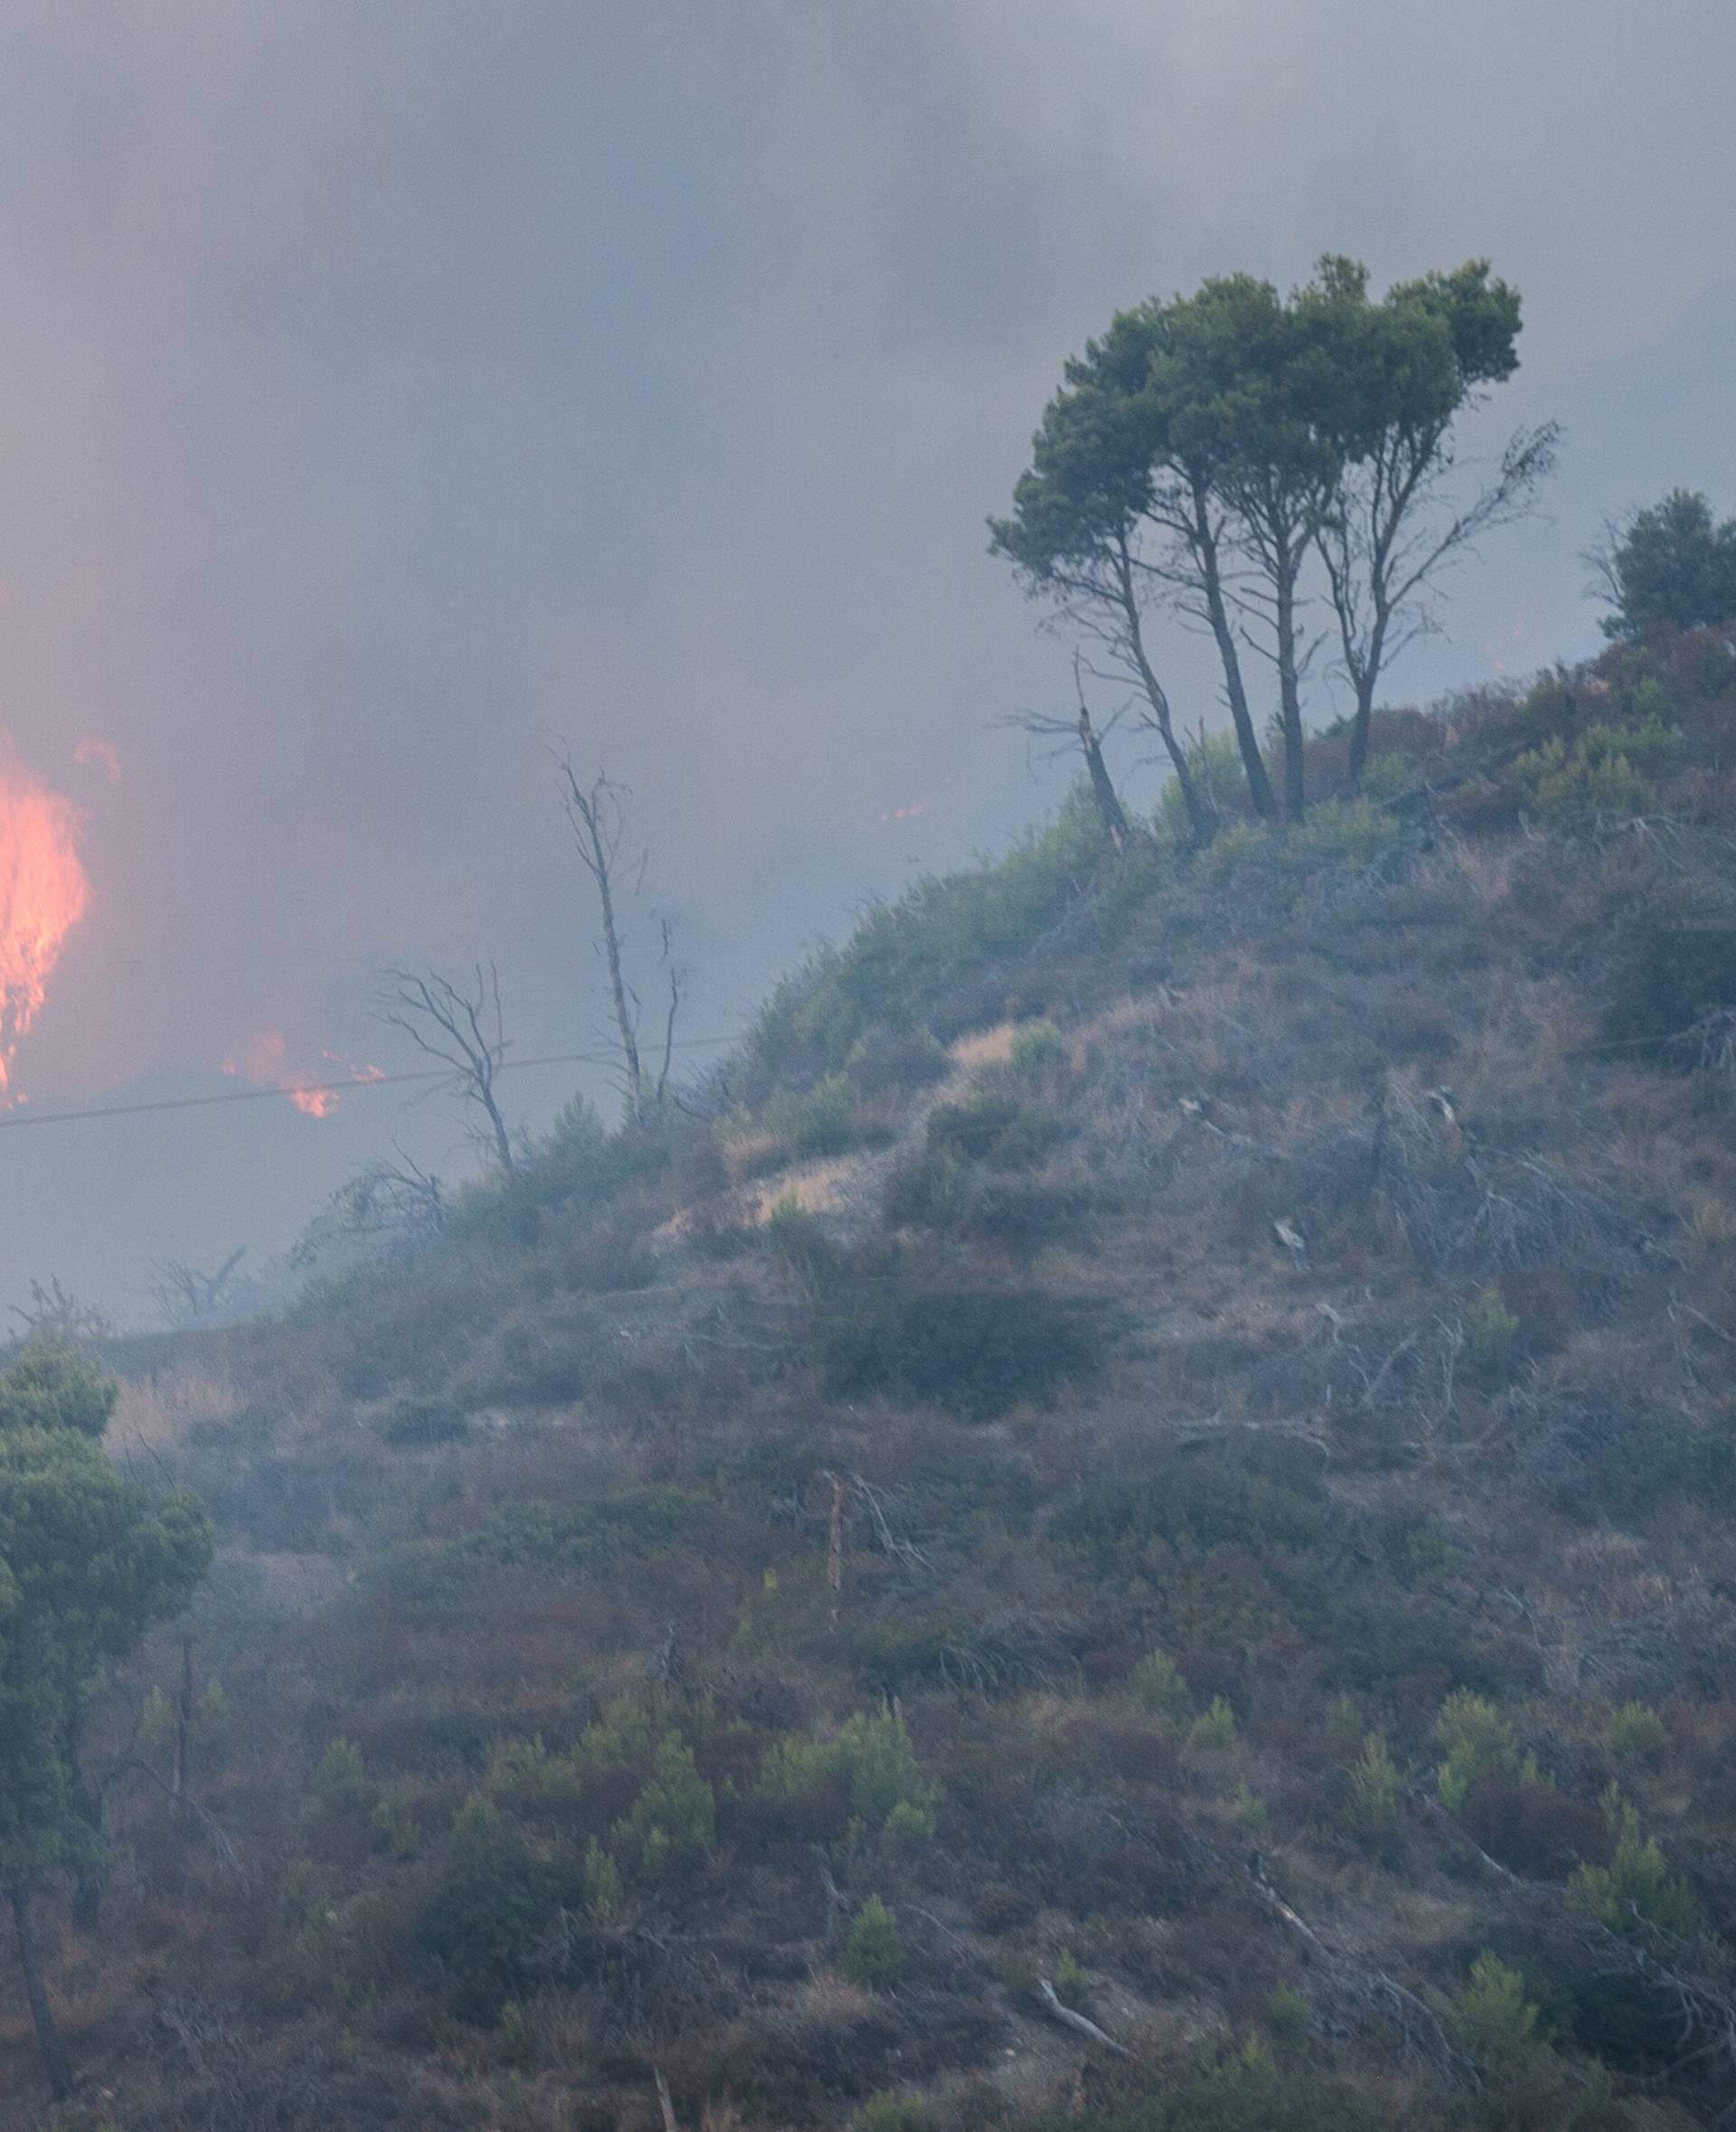 Trebisacce, a vast fire destroys acres of wood at the foot of Pollino in Calabria